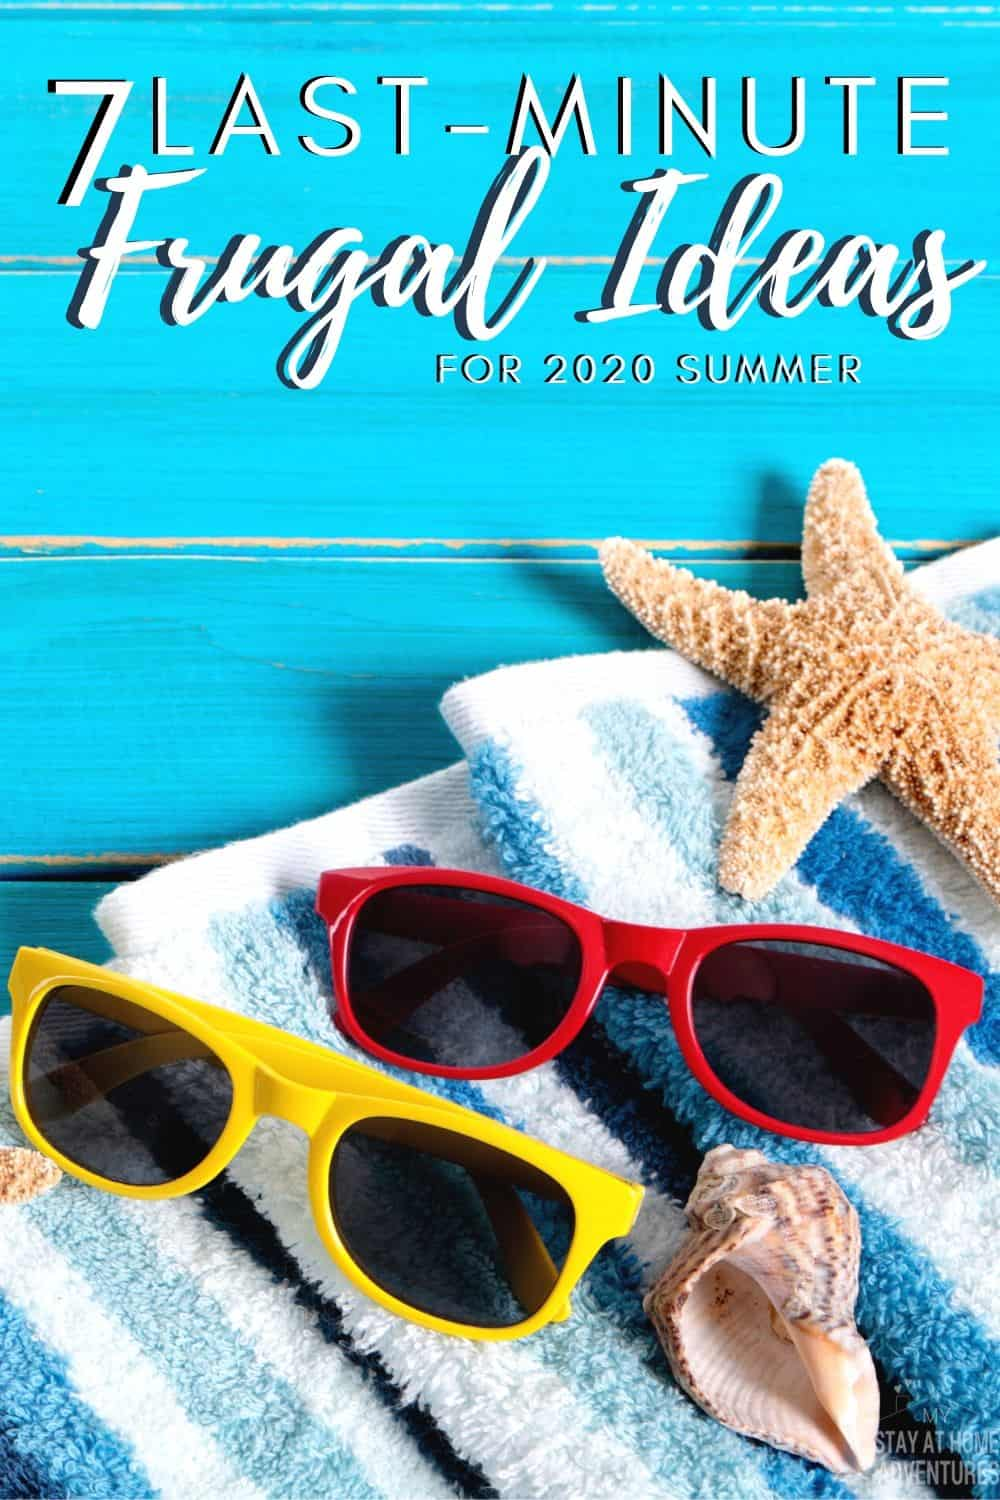 2020 summer is here and different from previous years. Here are seven last-minute frugal ideas for summer that your family is going to enjoy. via @mystayathome